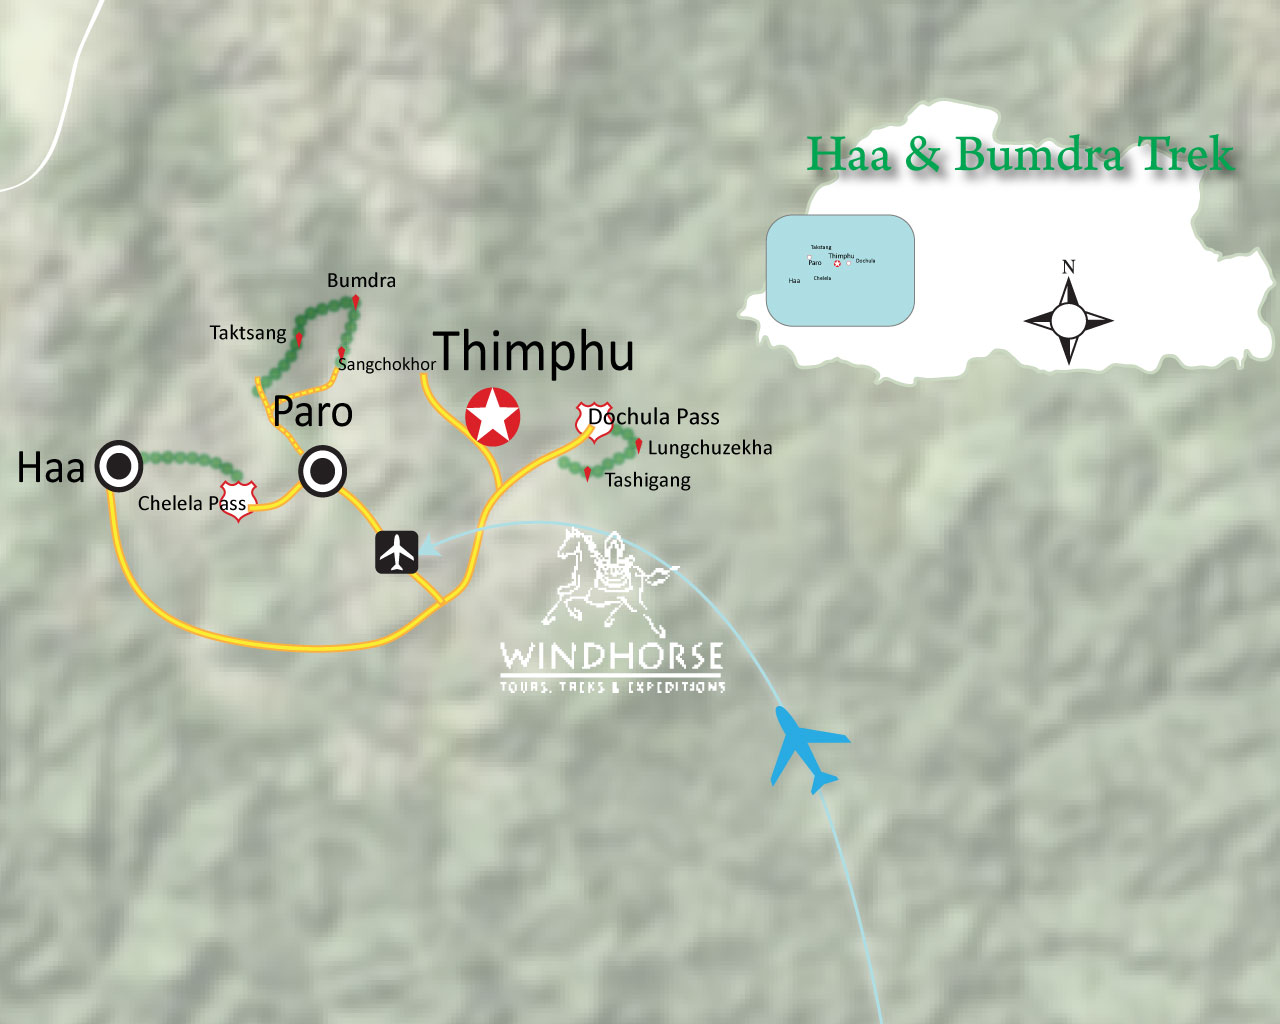 Haa & Bumdra Trek Trip Map, Route Map